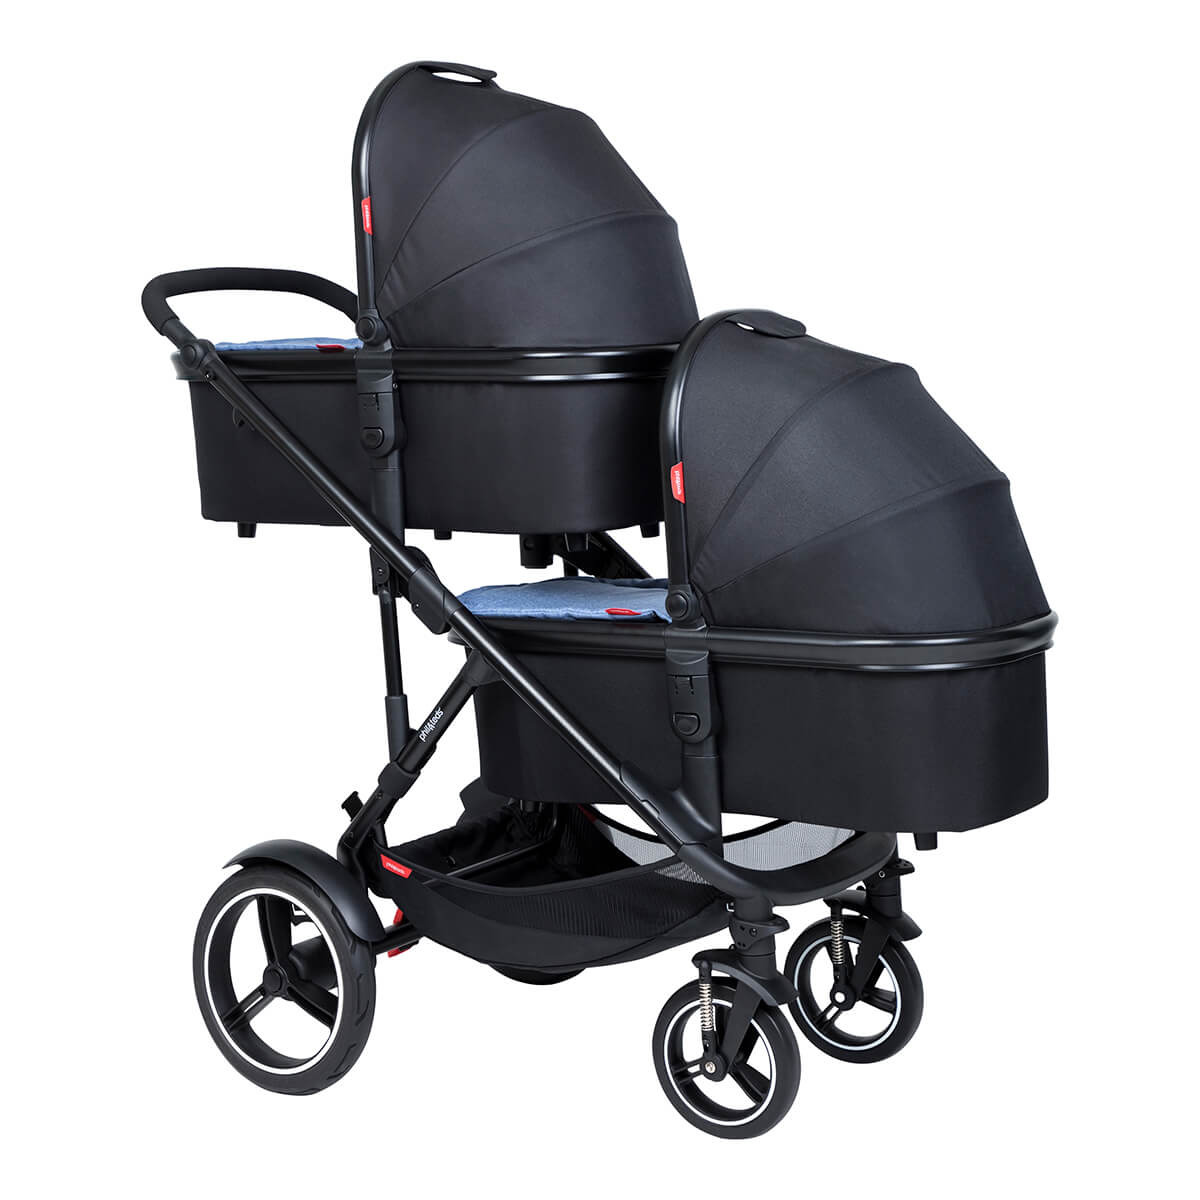 https://cdn.accentuate.io/4509917544525/19466204610754/philteds-voyager-inline-buggy-with-double-snug-carrycots-v1626485611772.jpg?1200x1200